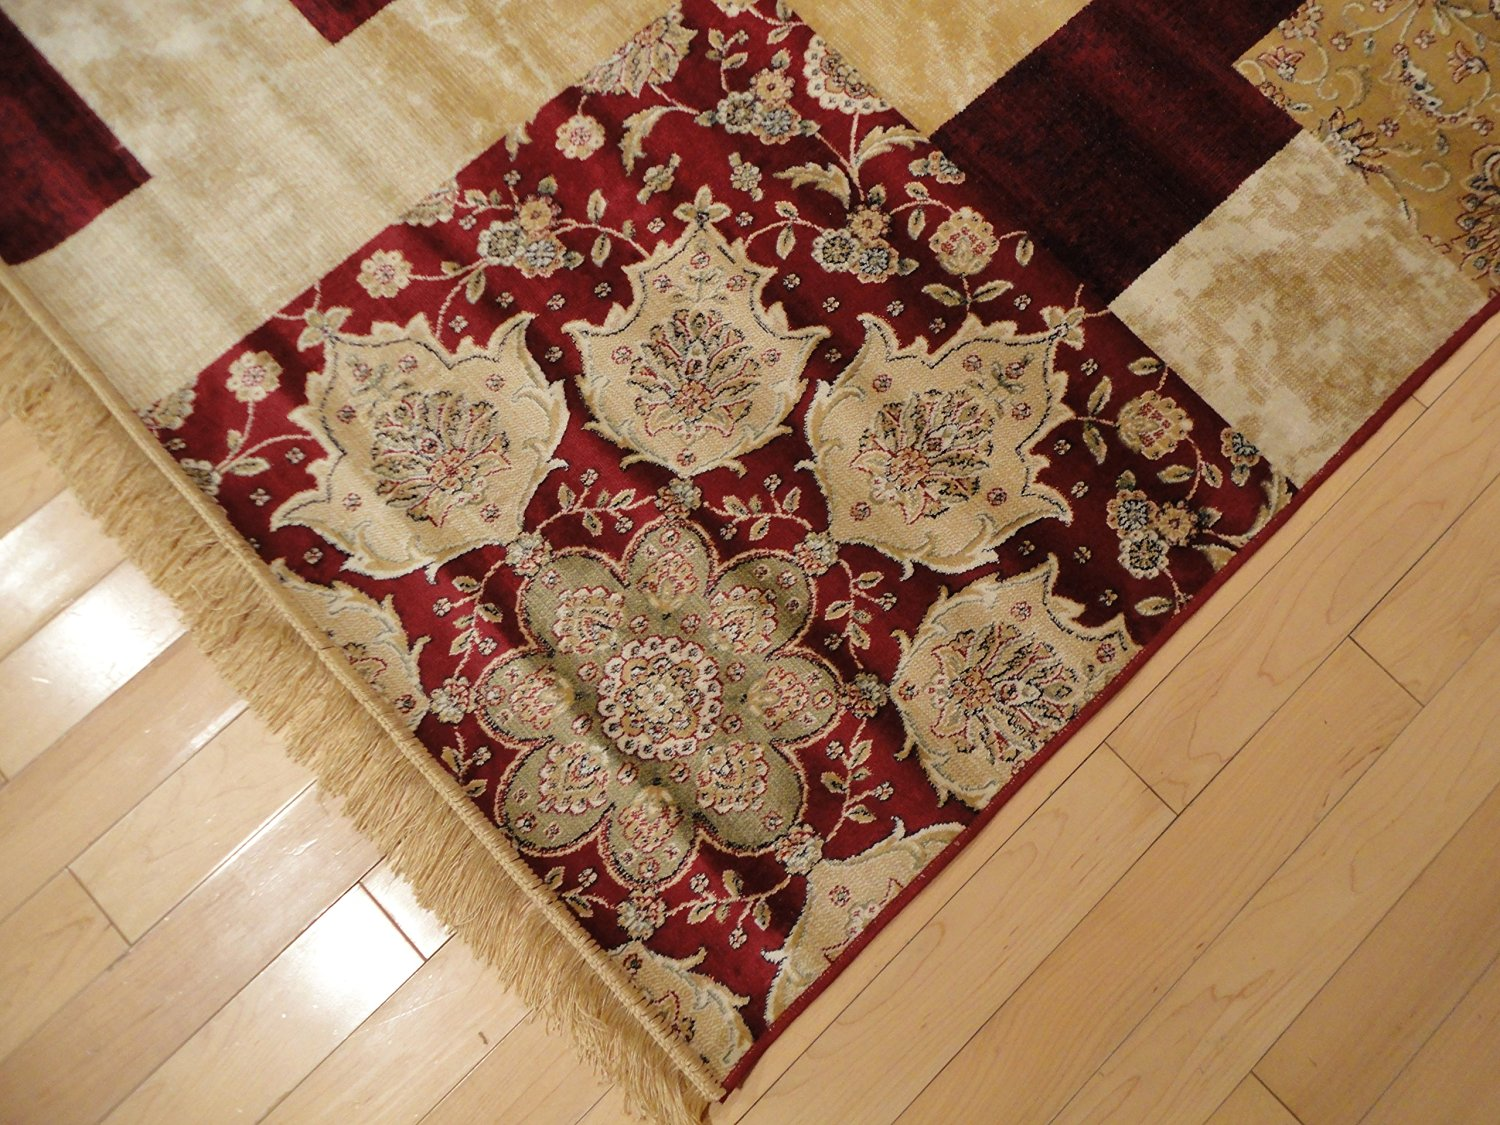 Cheap Cream And Red Area Rugs Find Cream And Red Area Rugs Deals On